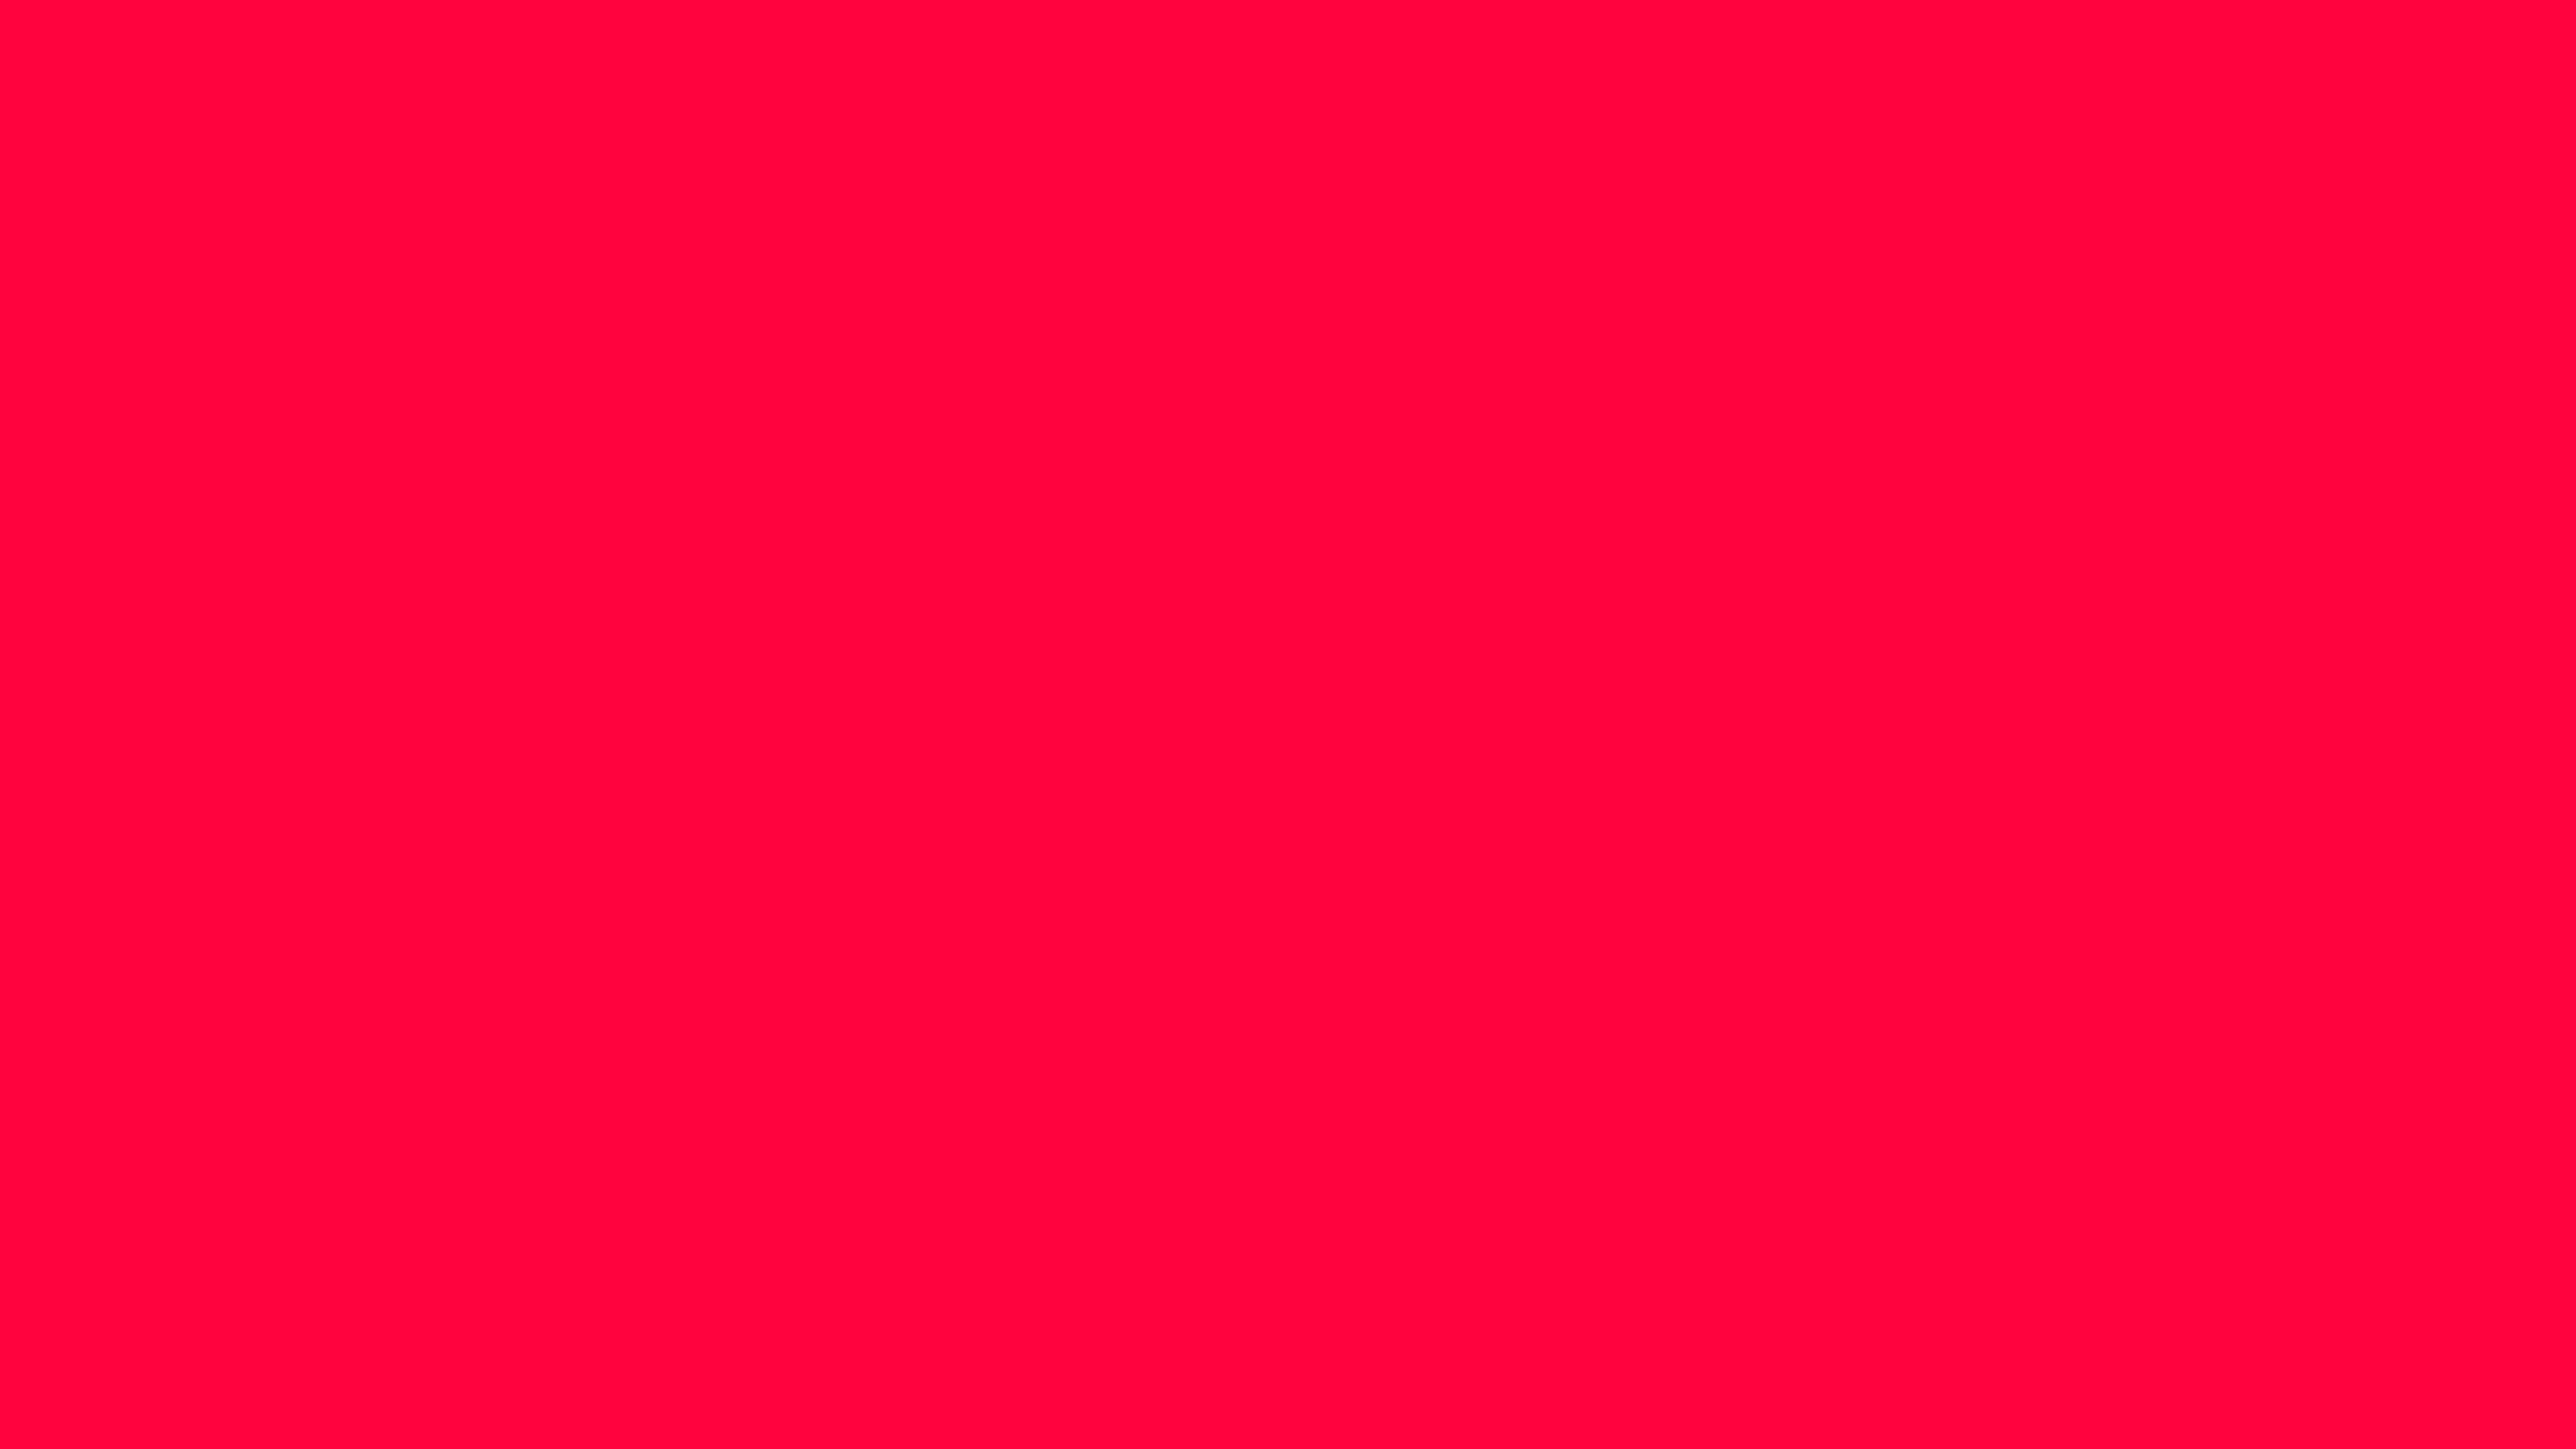 5120x2880 American Rose Solid Color Background